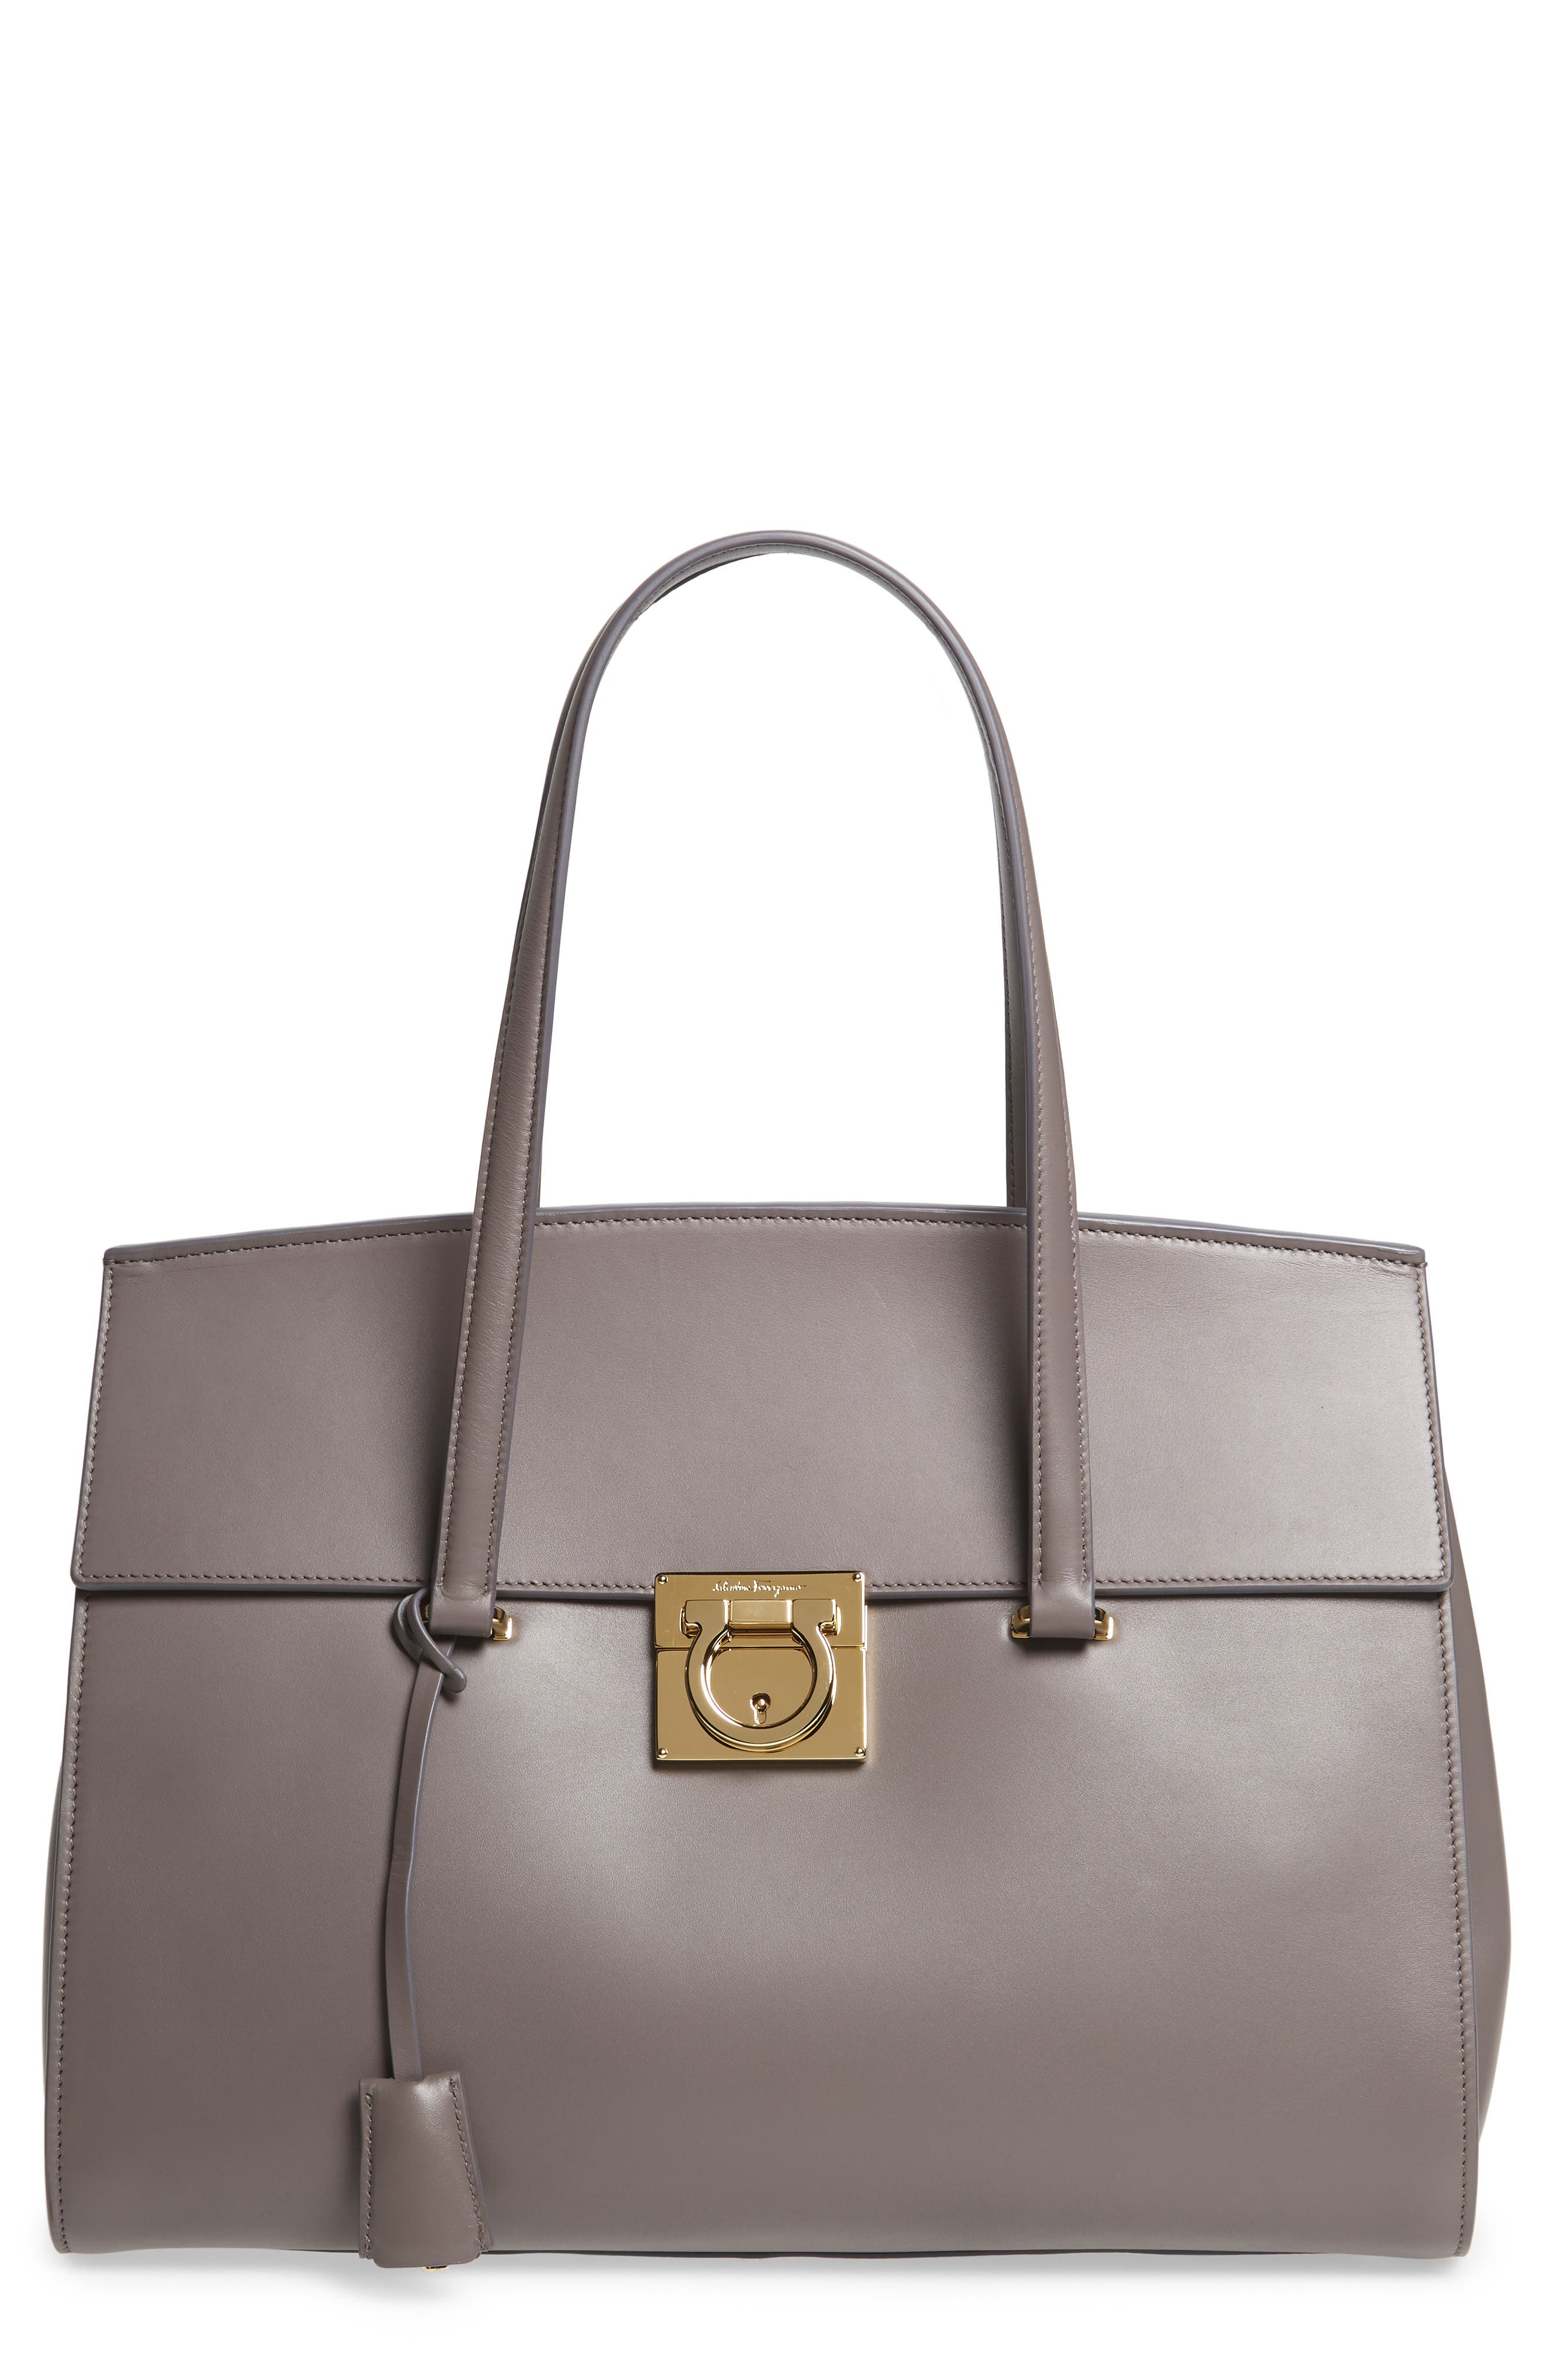 Salvatore Ferragamo Large Smooth Leather Tote